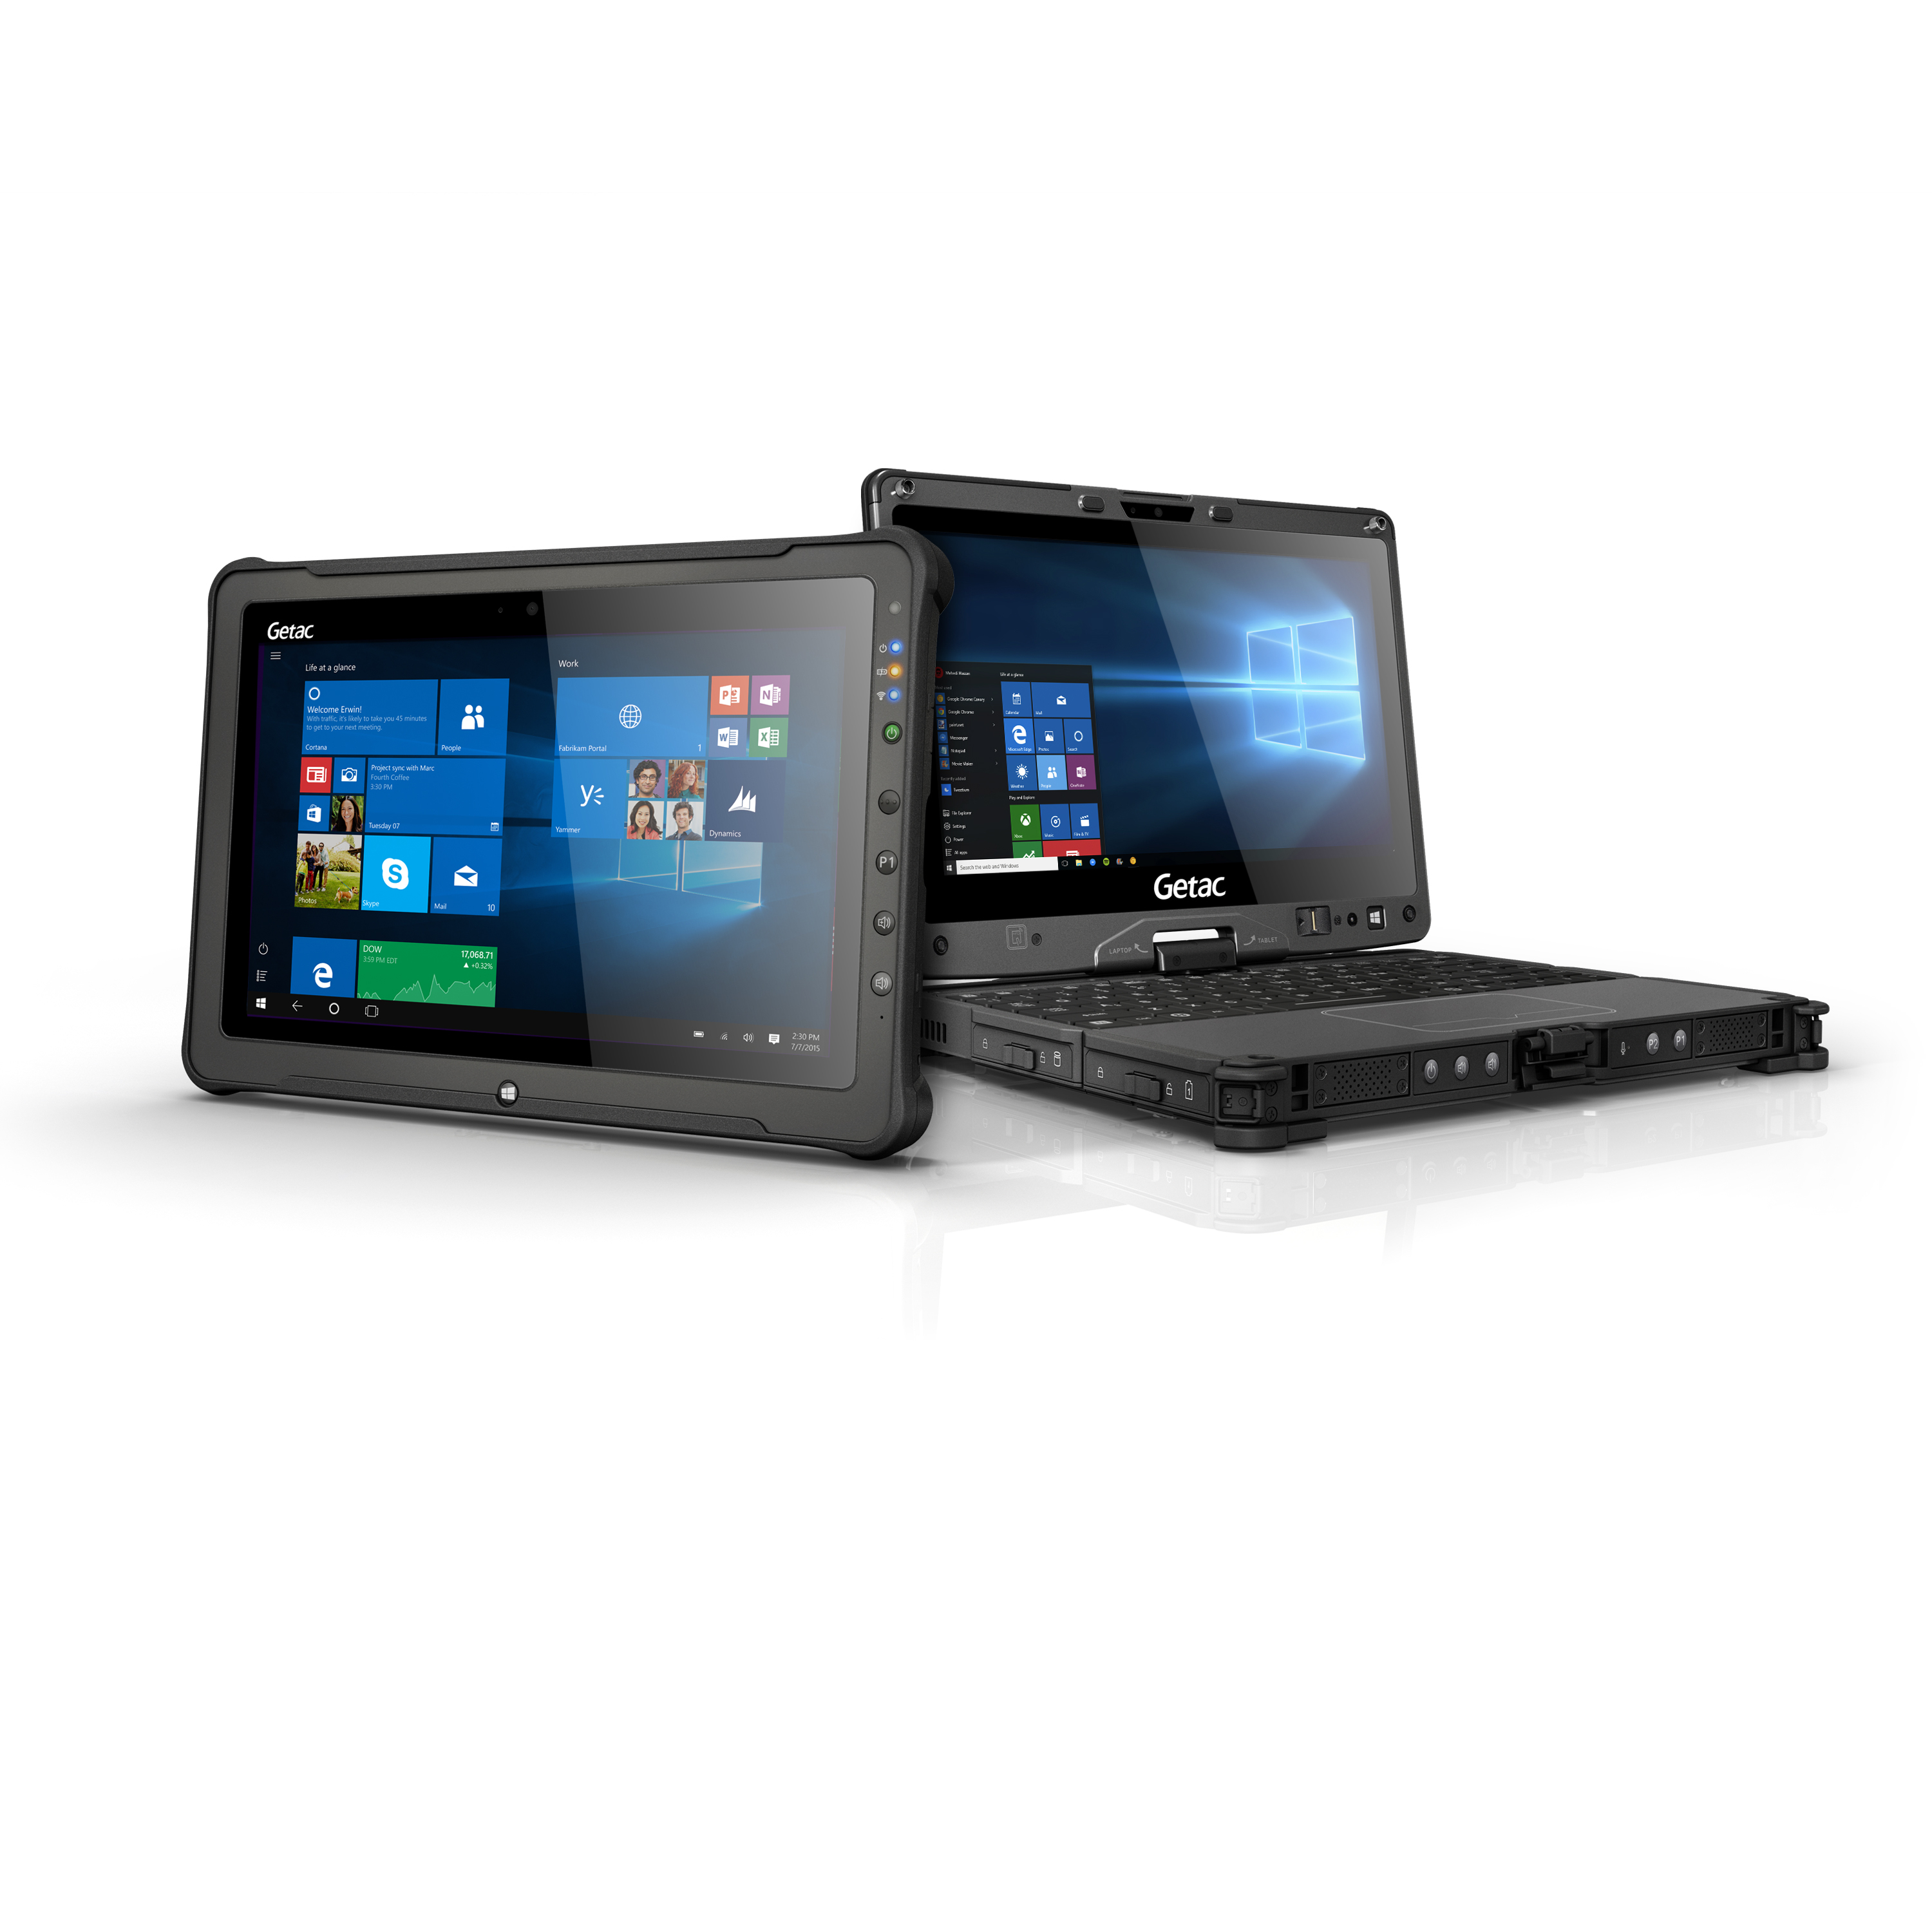 Getac S Next Gen F110 Fully Rugged Tablet And V110 Convertible Offer Maximum Performance Multi Layer Security All Within A Light